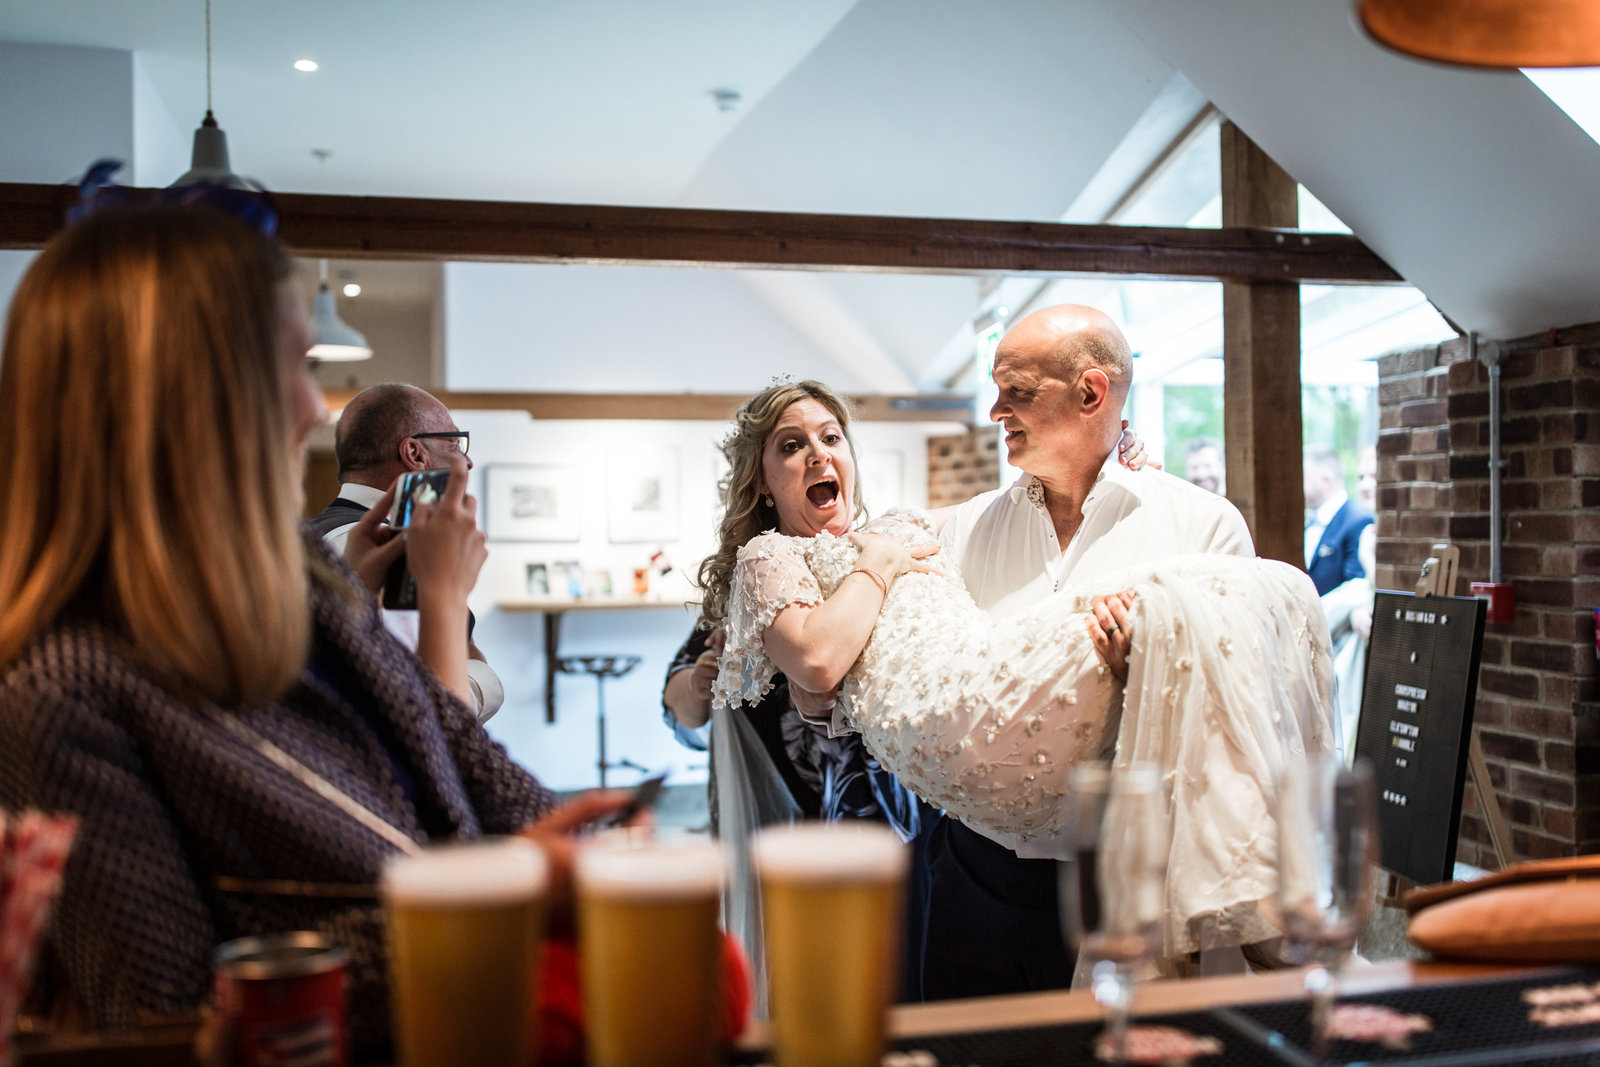 A shocked bride is picked up by her uncle on the way to the bar at a Norfolk wedding venue. The bar is lined with beers and shots.